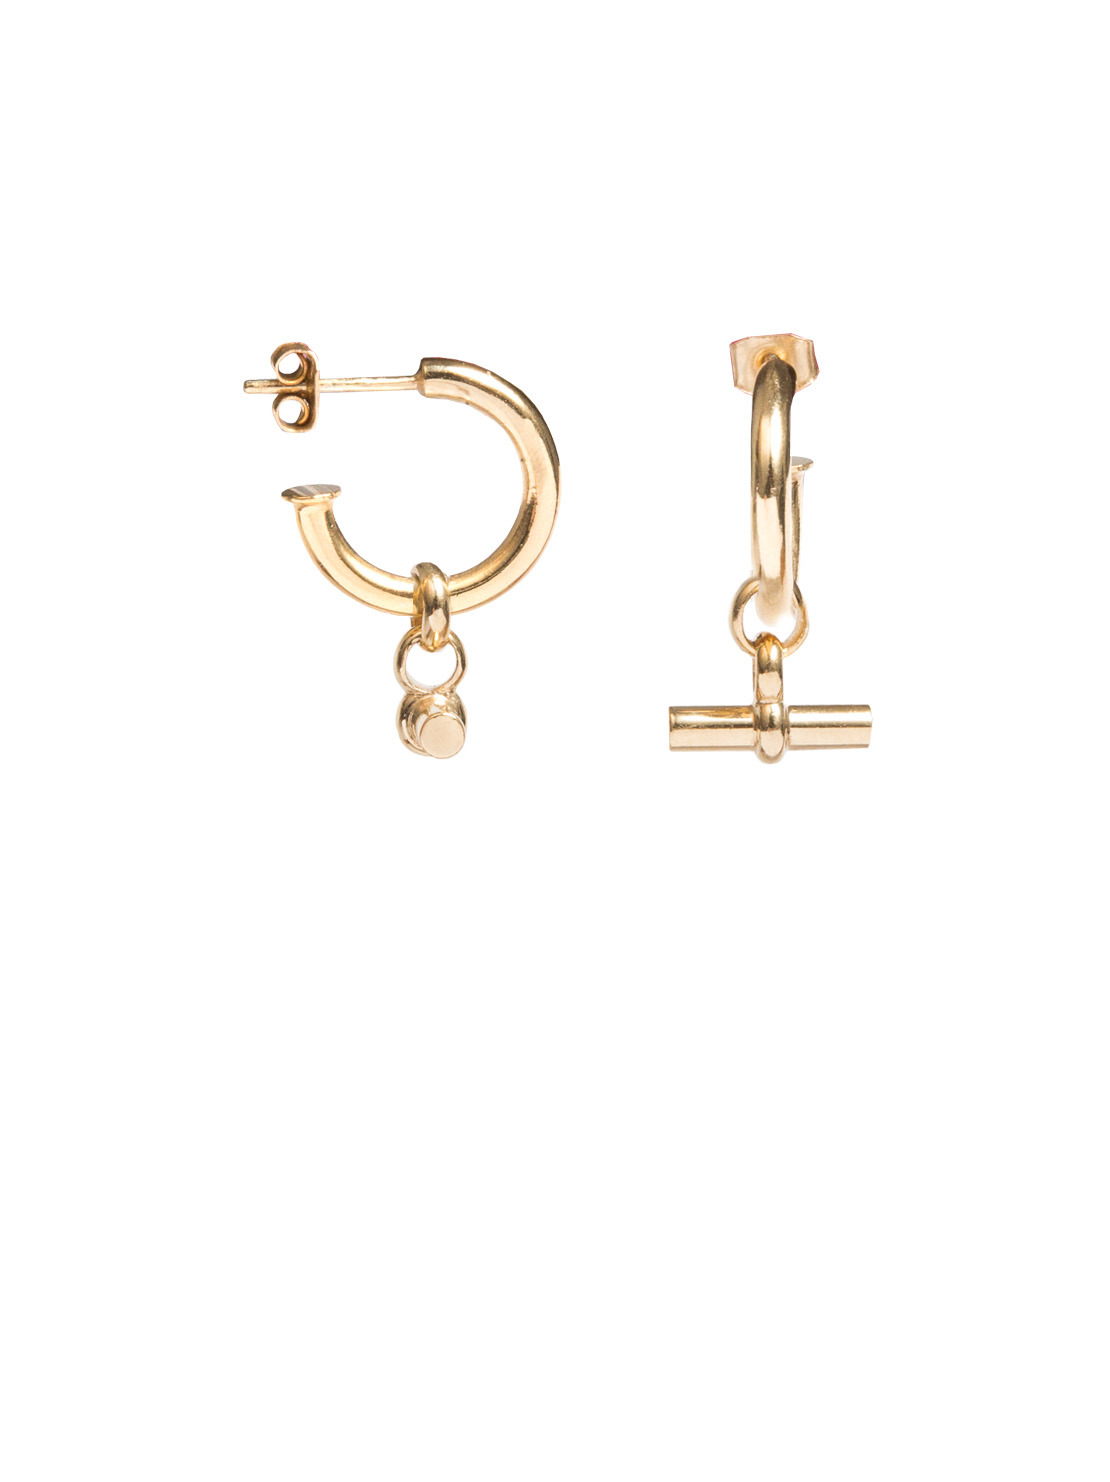 4230d72d7 Small Gold Hoop Earrings With Small Gold T-Bar - Tilly Sveaas Jewellery